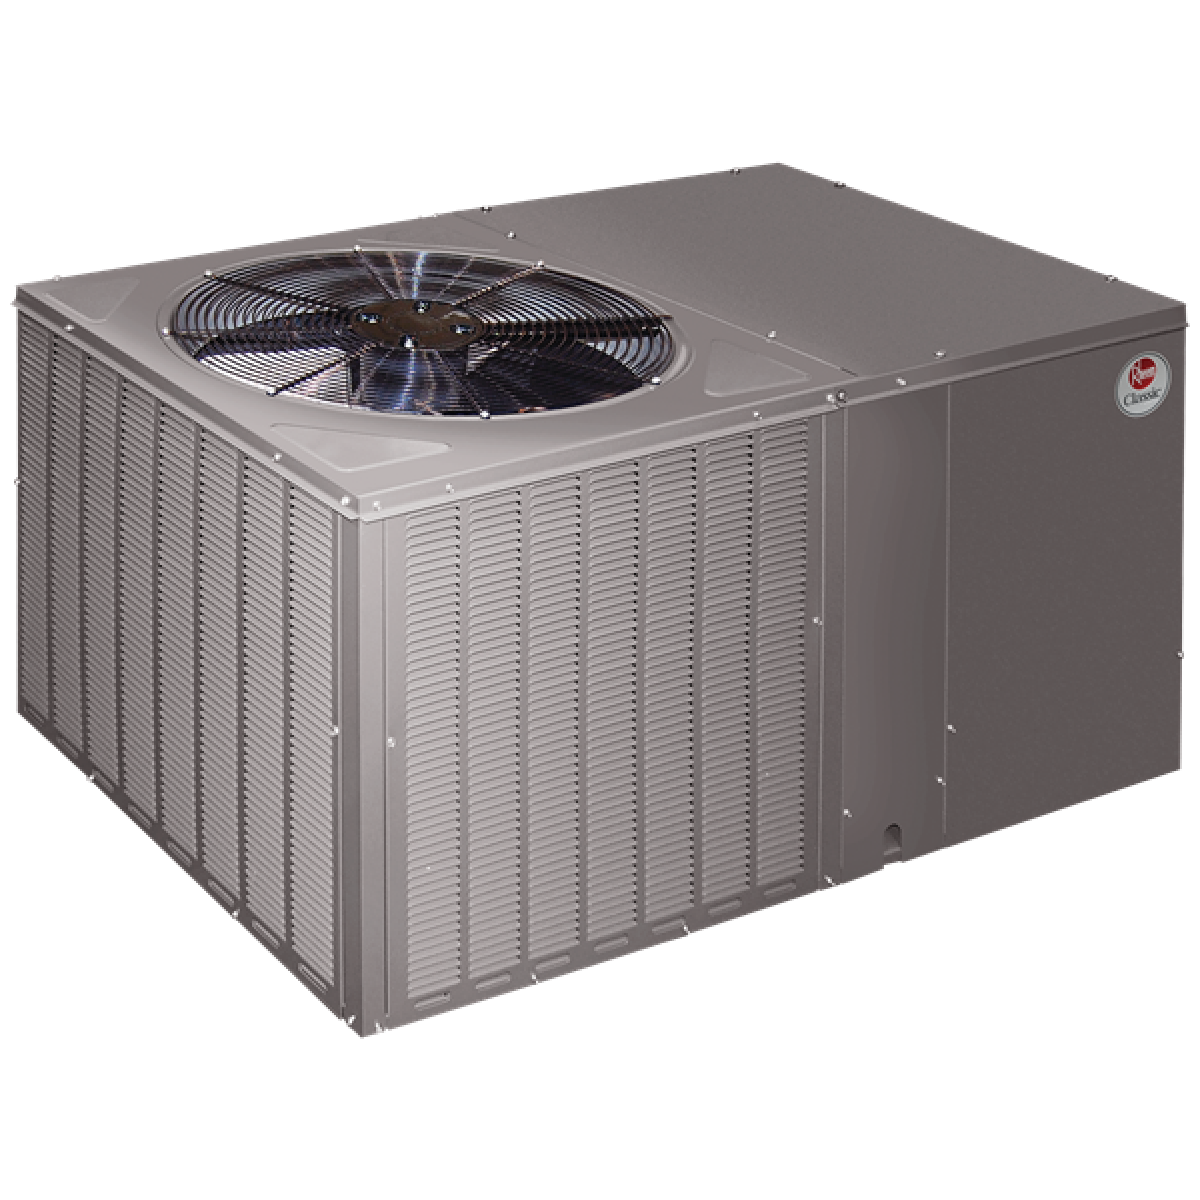 rheem 14 seer 3 0 ton heat pump package unit horizontal in 2 5 ton 3 0 ton self contained. Black Bedroom Furniture Sets. Home Design Ideas